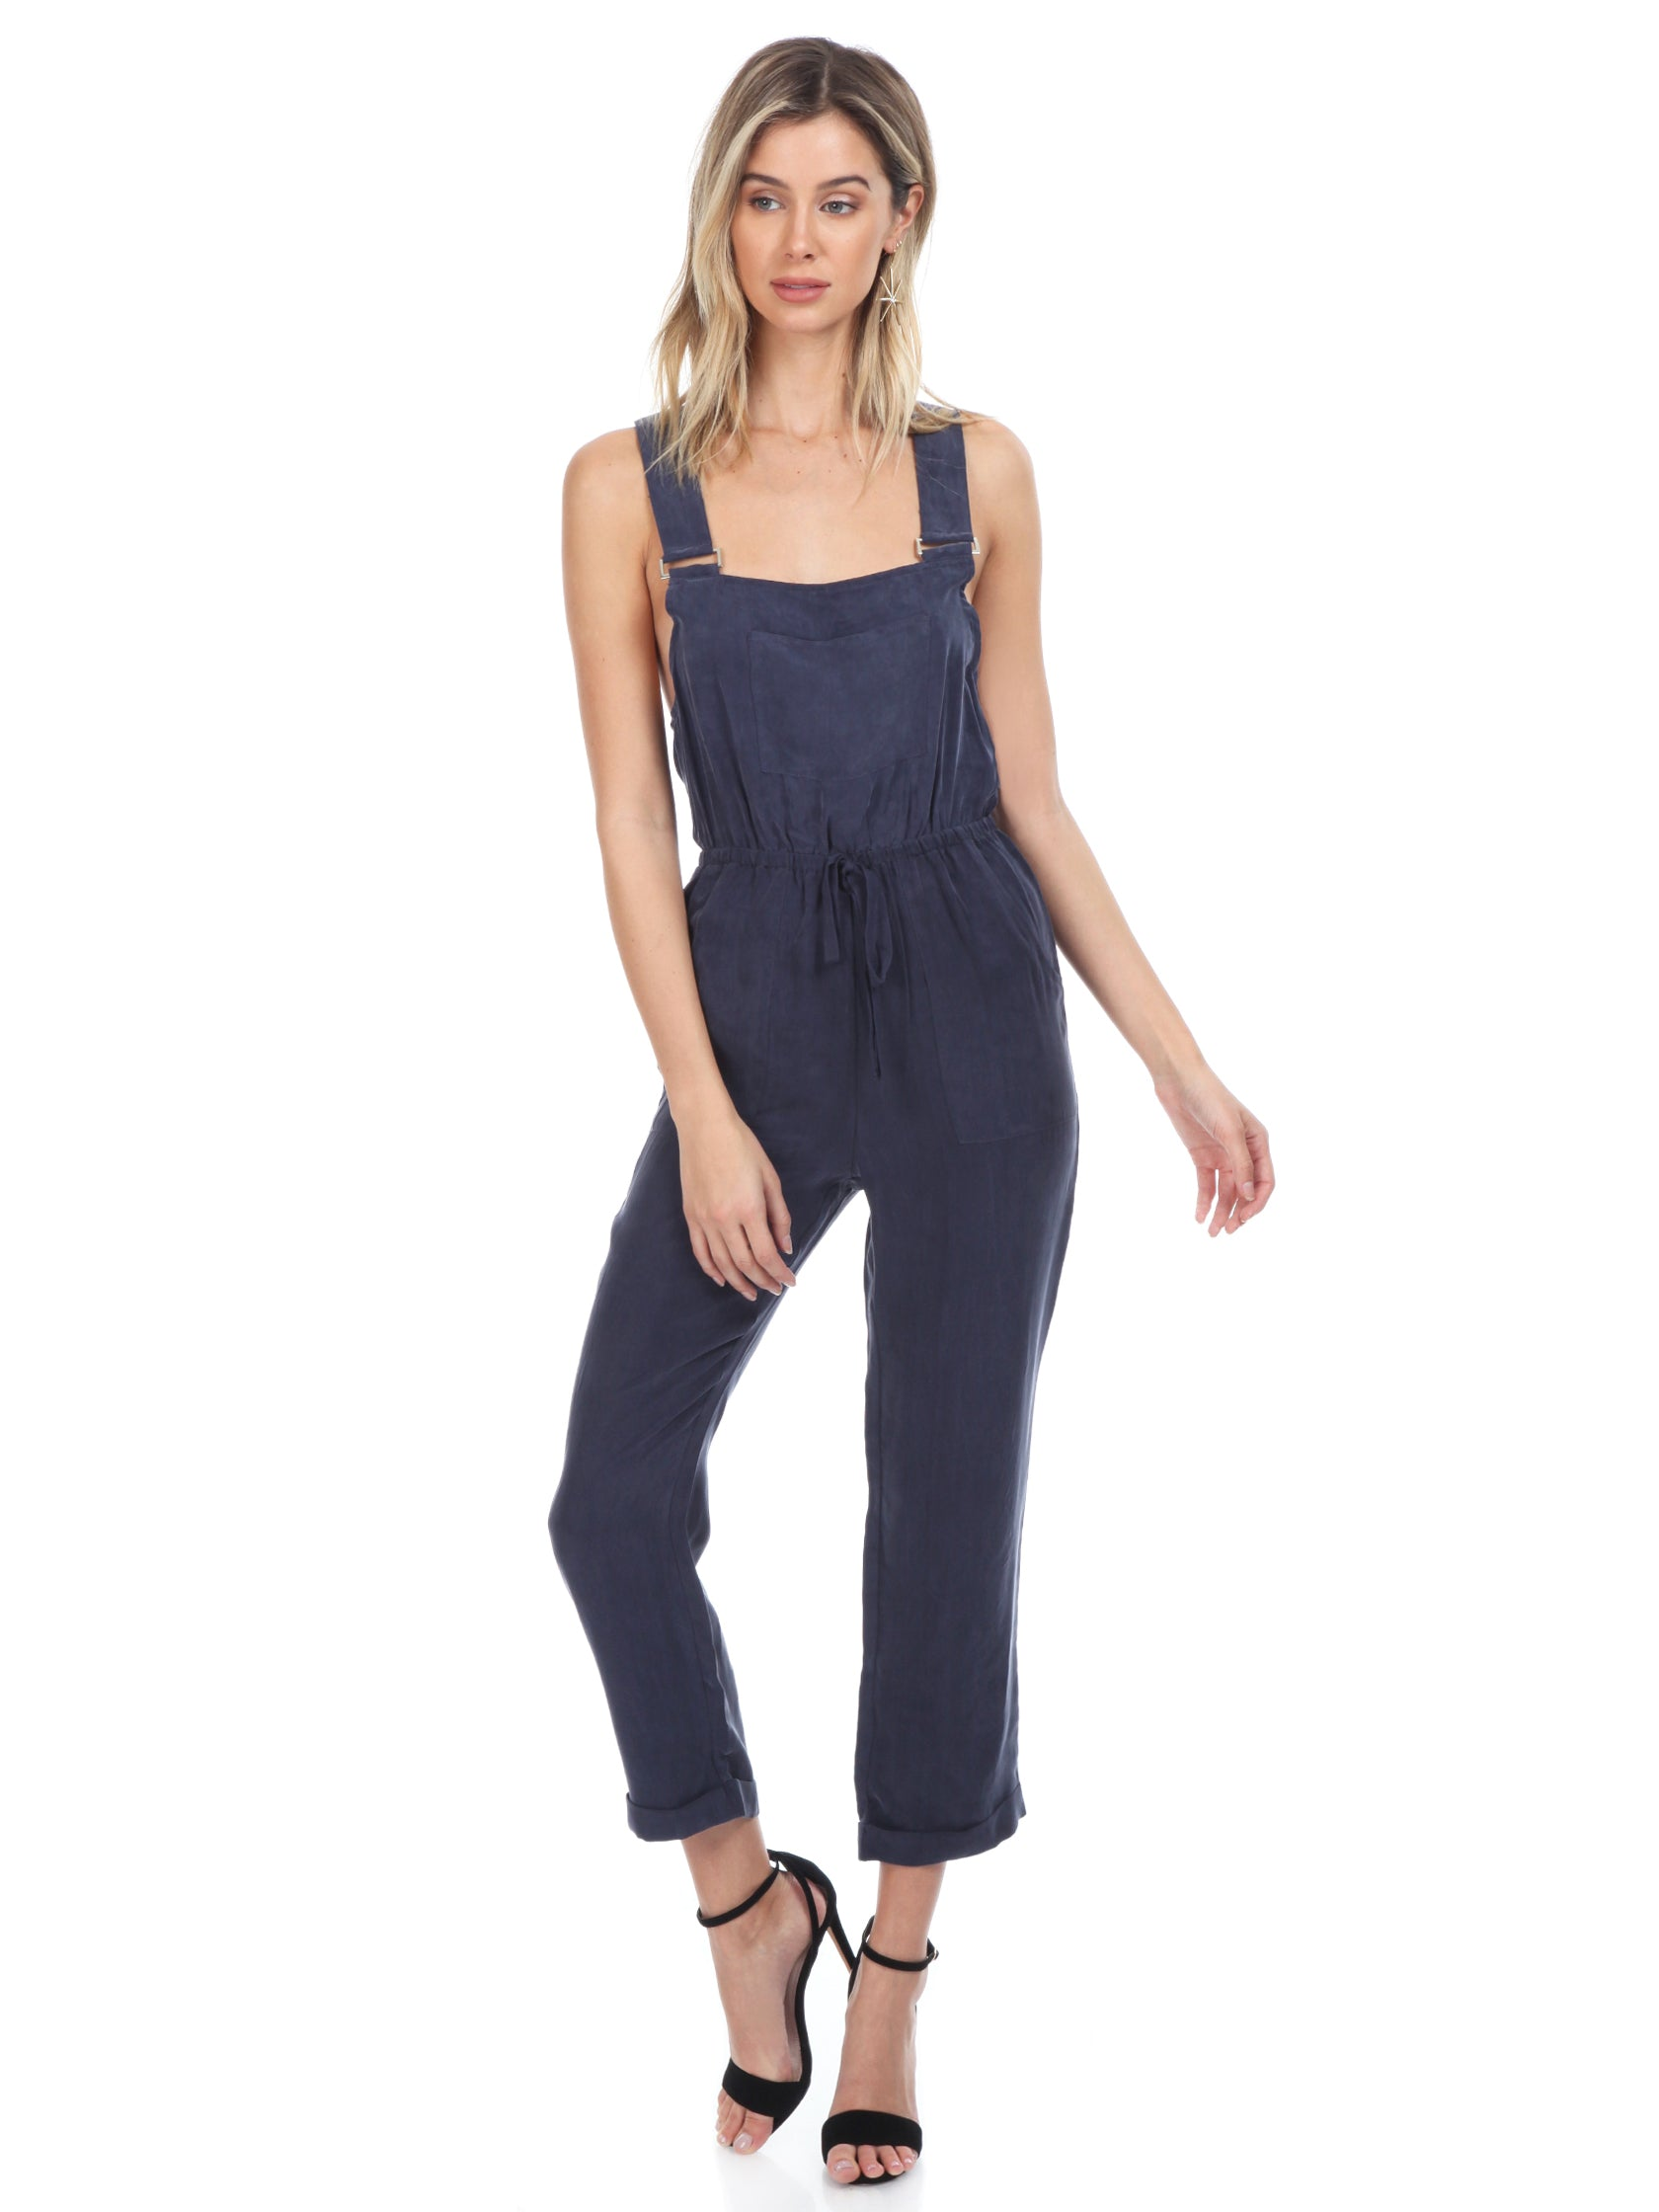 Women outfit in a jumpsuit rental from FashionPass called Cadie Overall